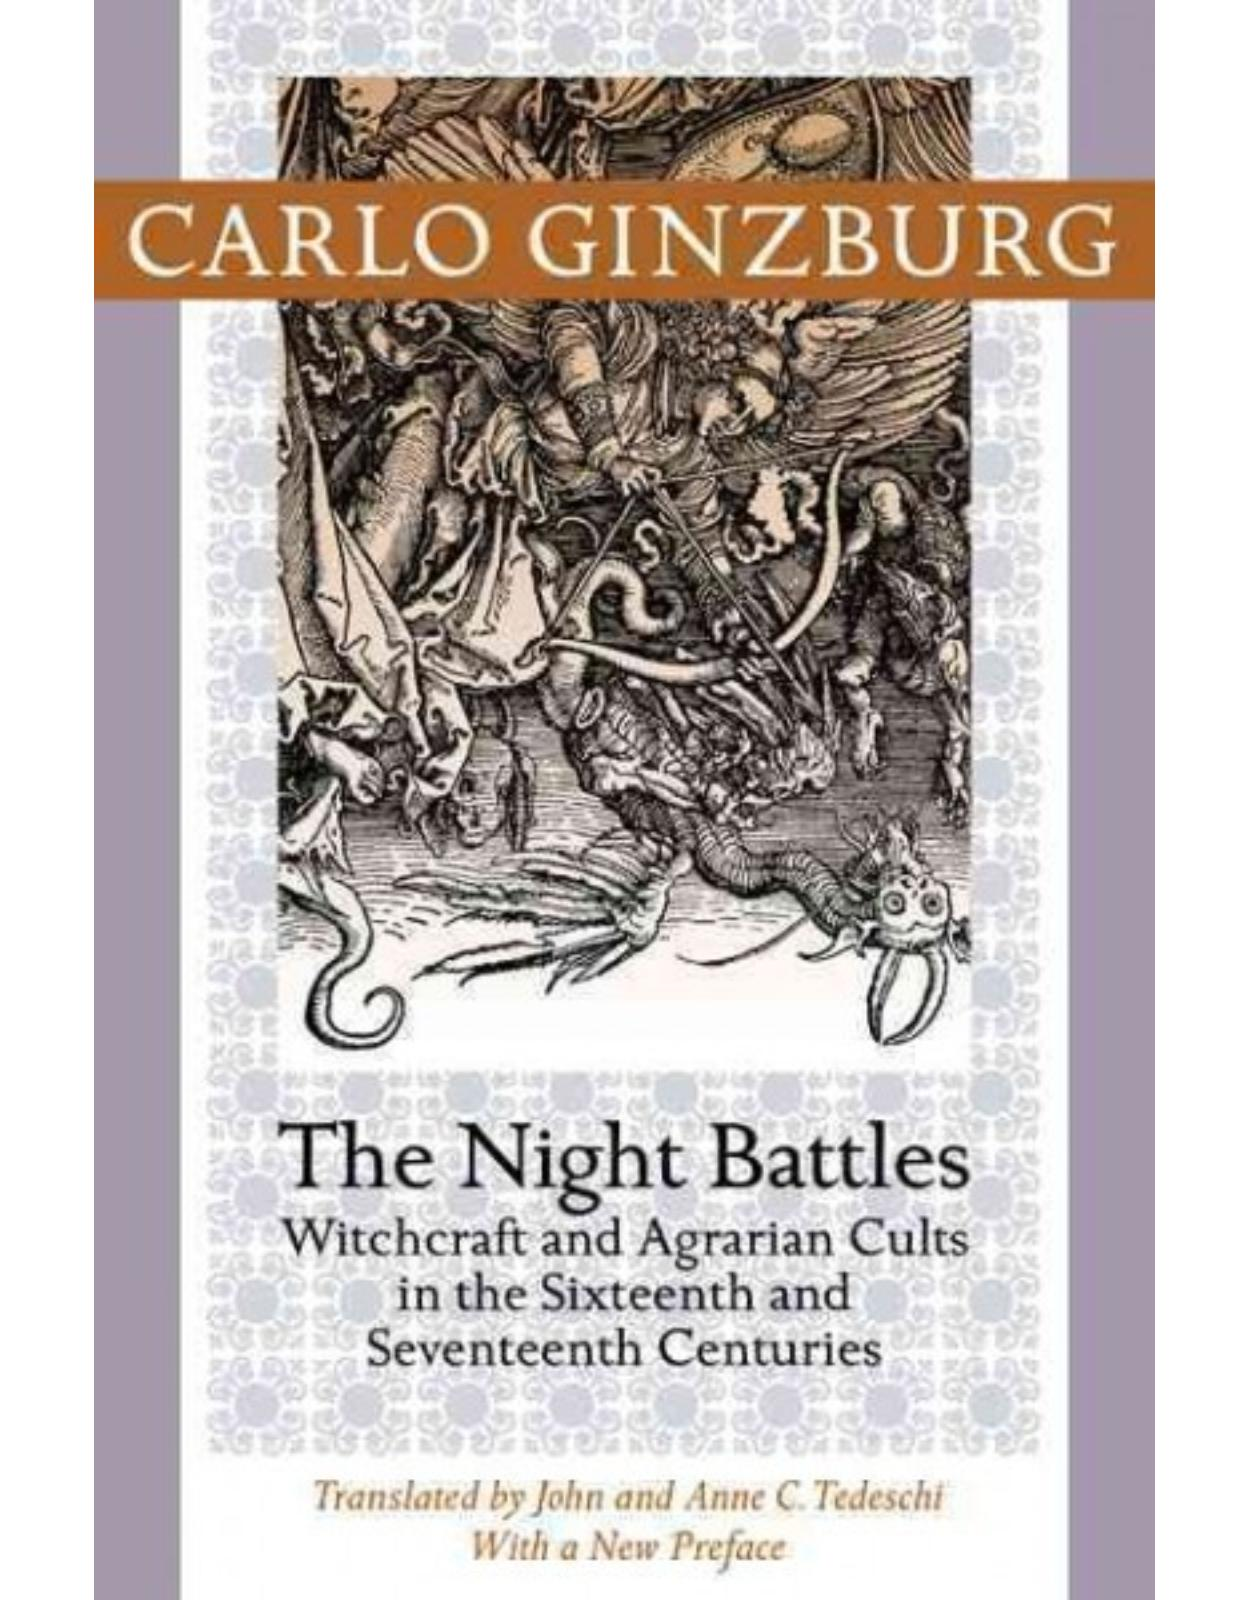 Night Battles. Witchcraft and Agrarian Cults in the Sixteenth and Seventeenth Centuries